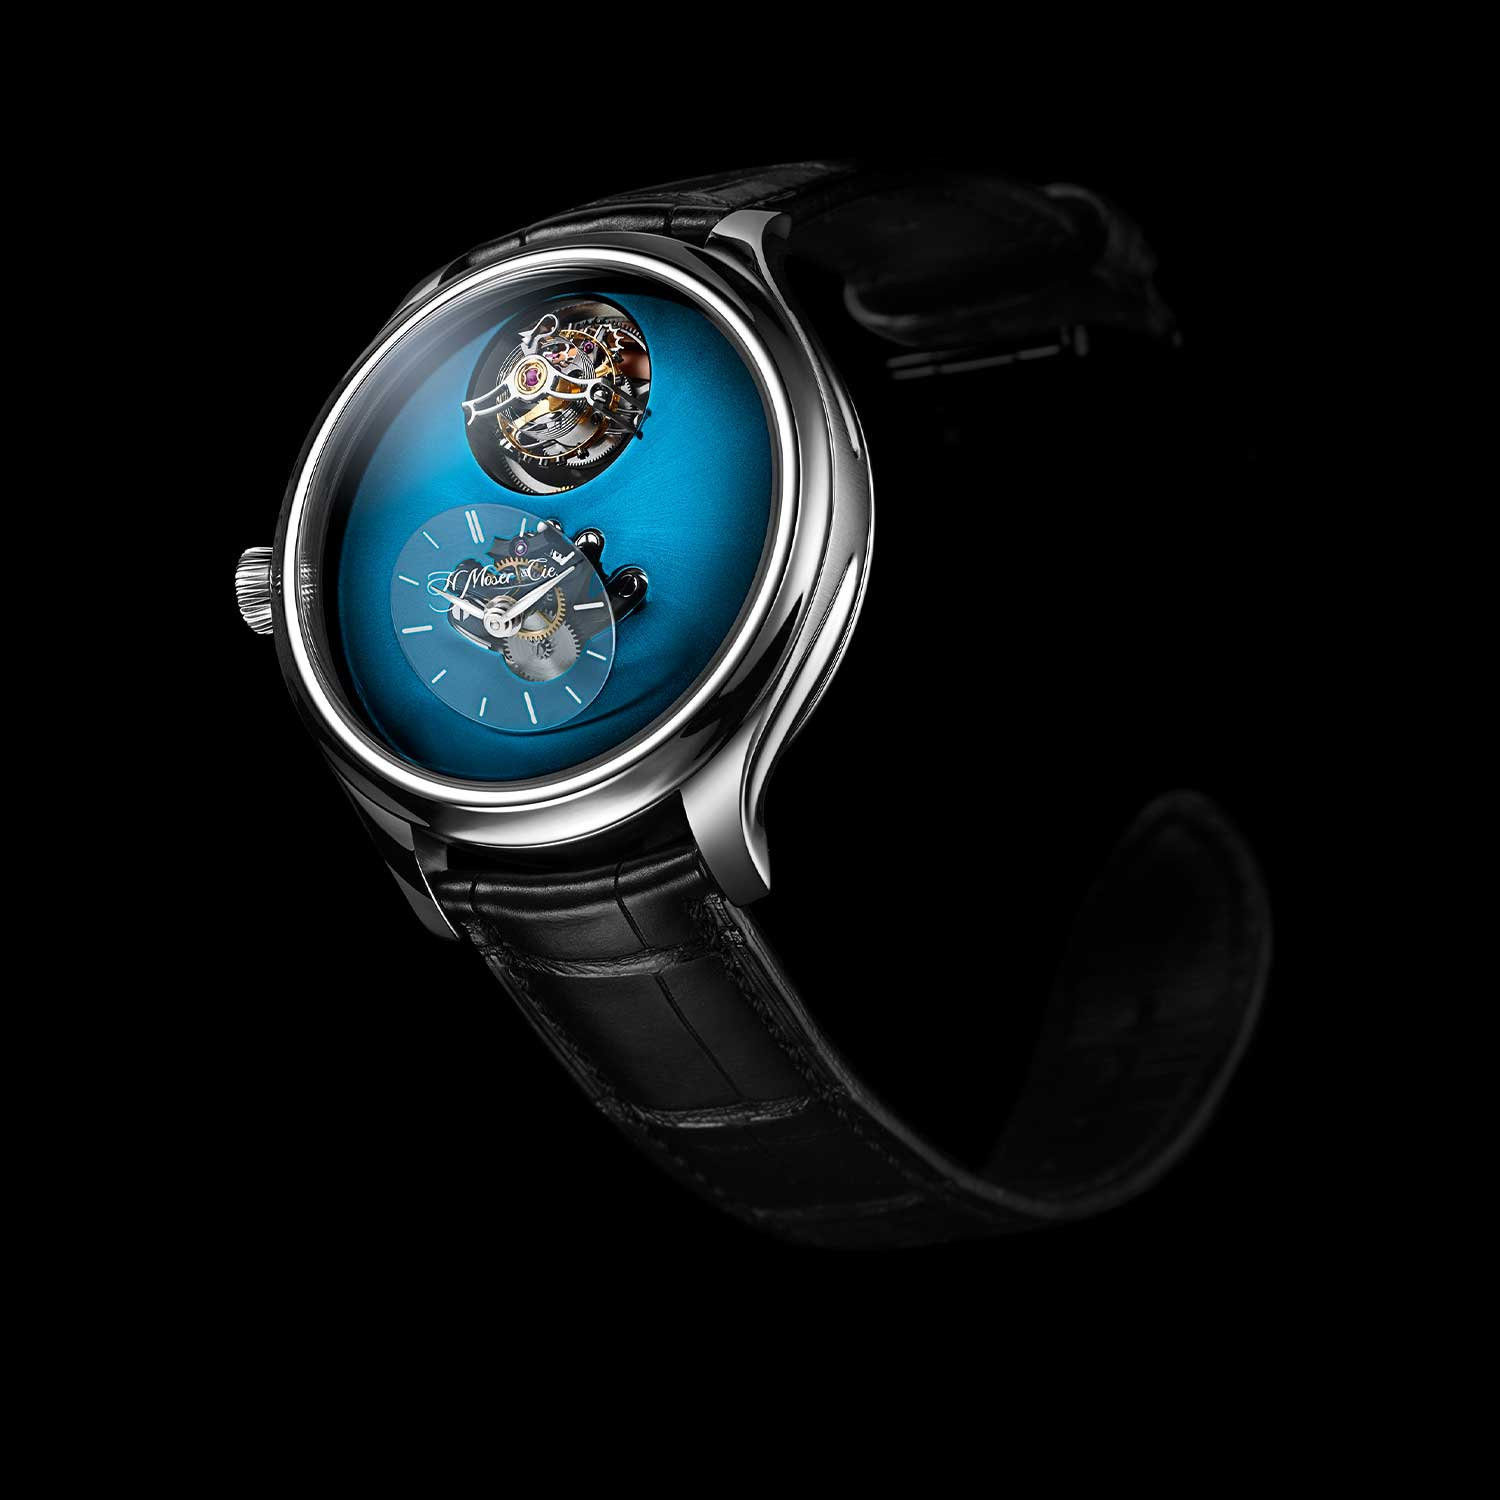 MB&F × H. Moser Endeavour Cylindrical Tourbillon with the Funky Blue dial